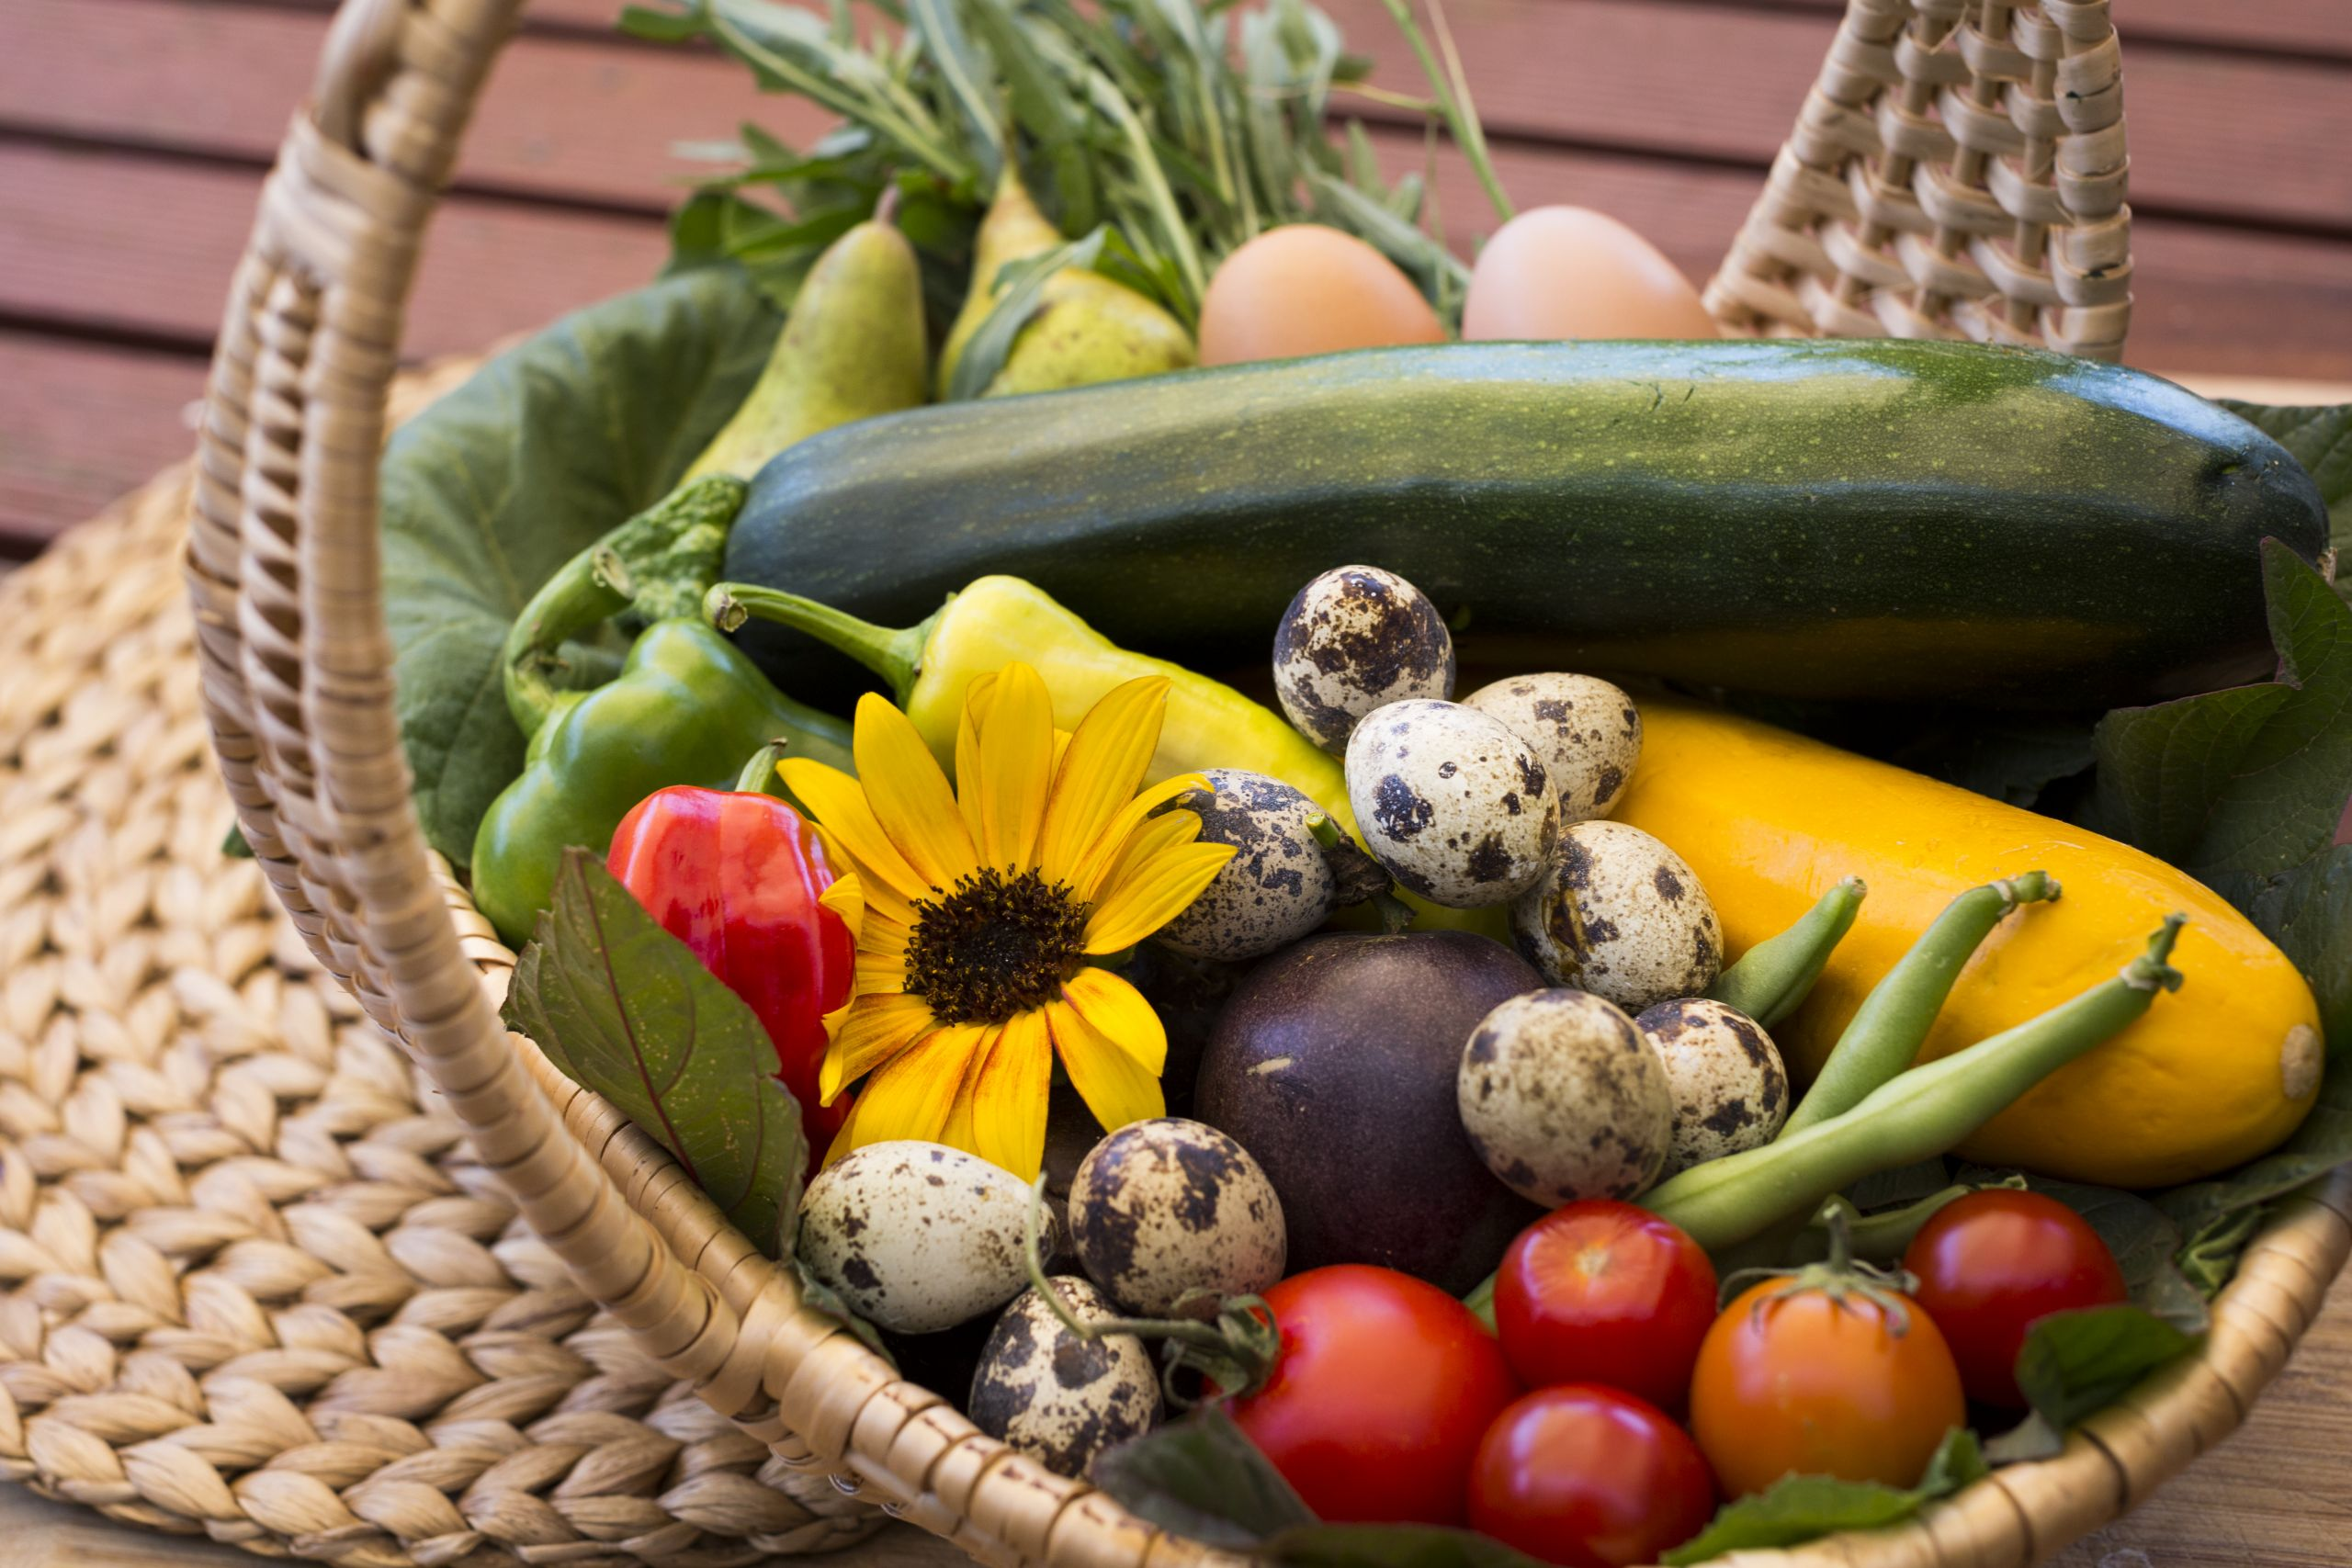 Basket of fruit, vegetables and herbs